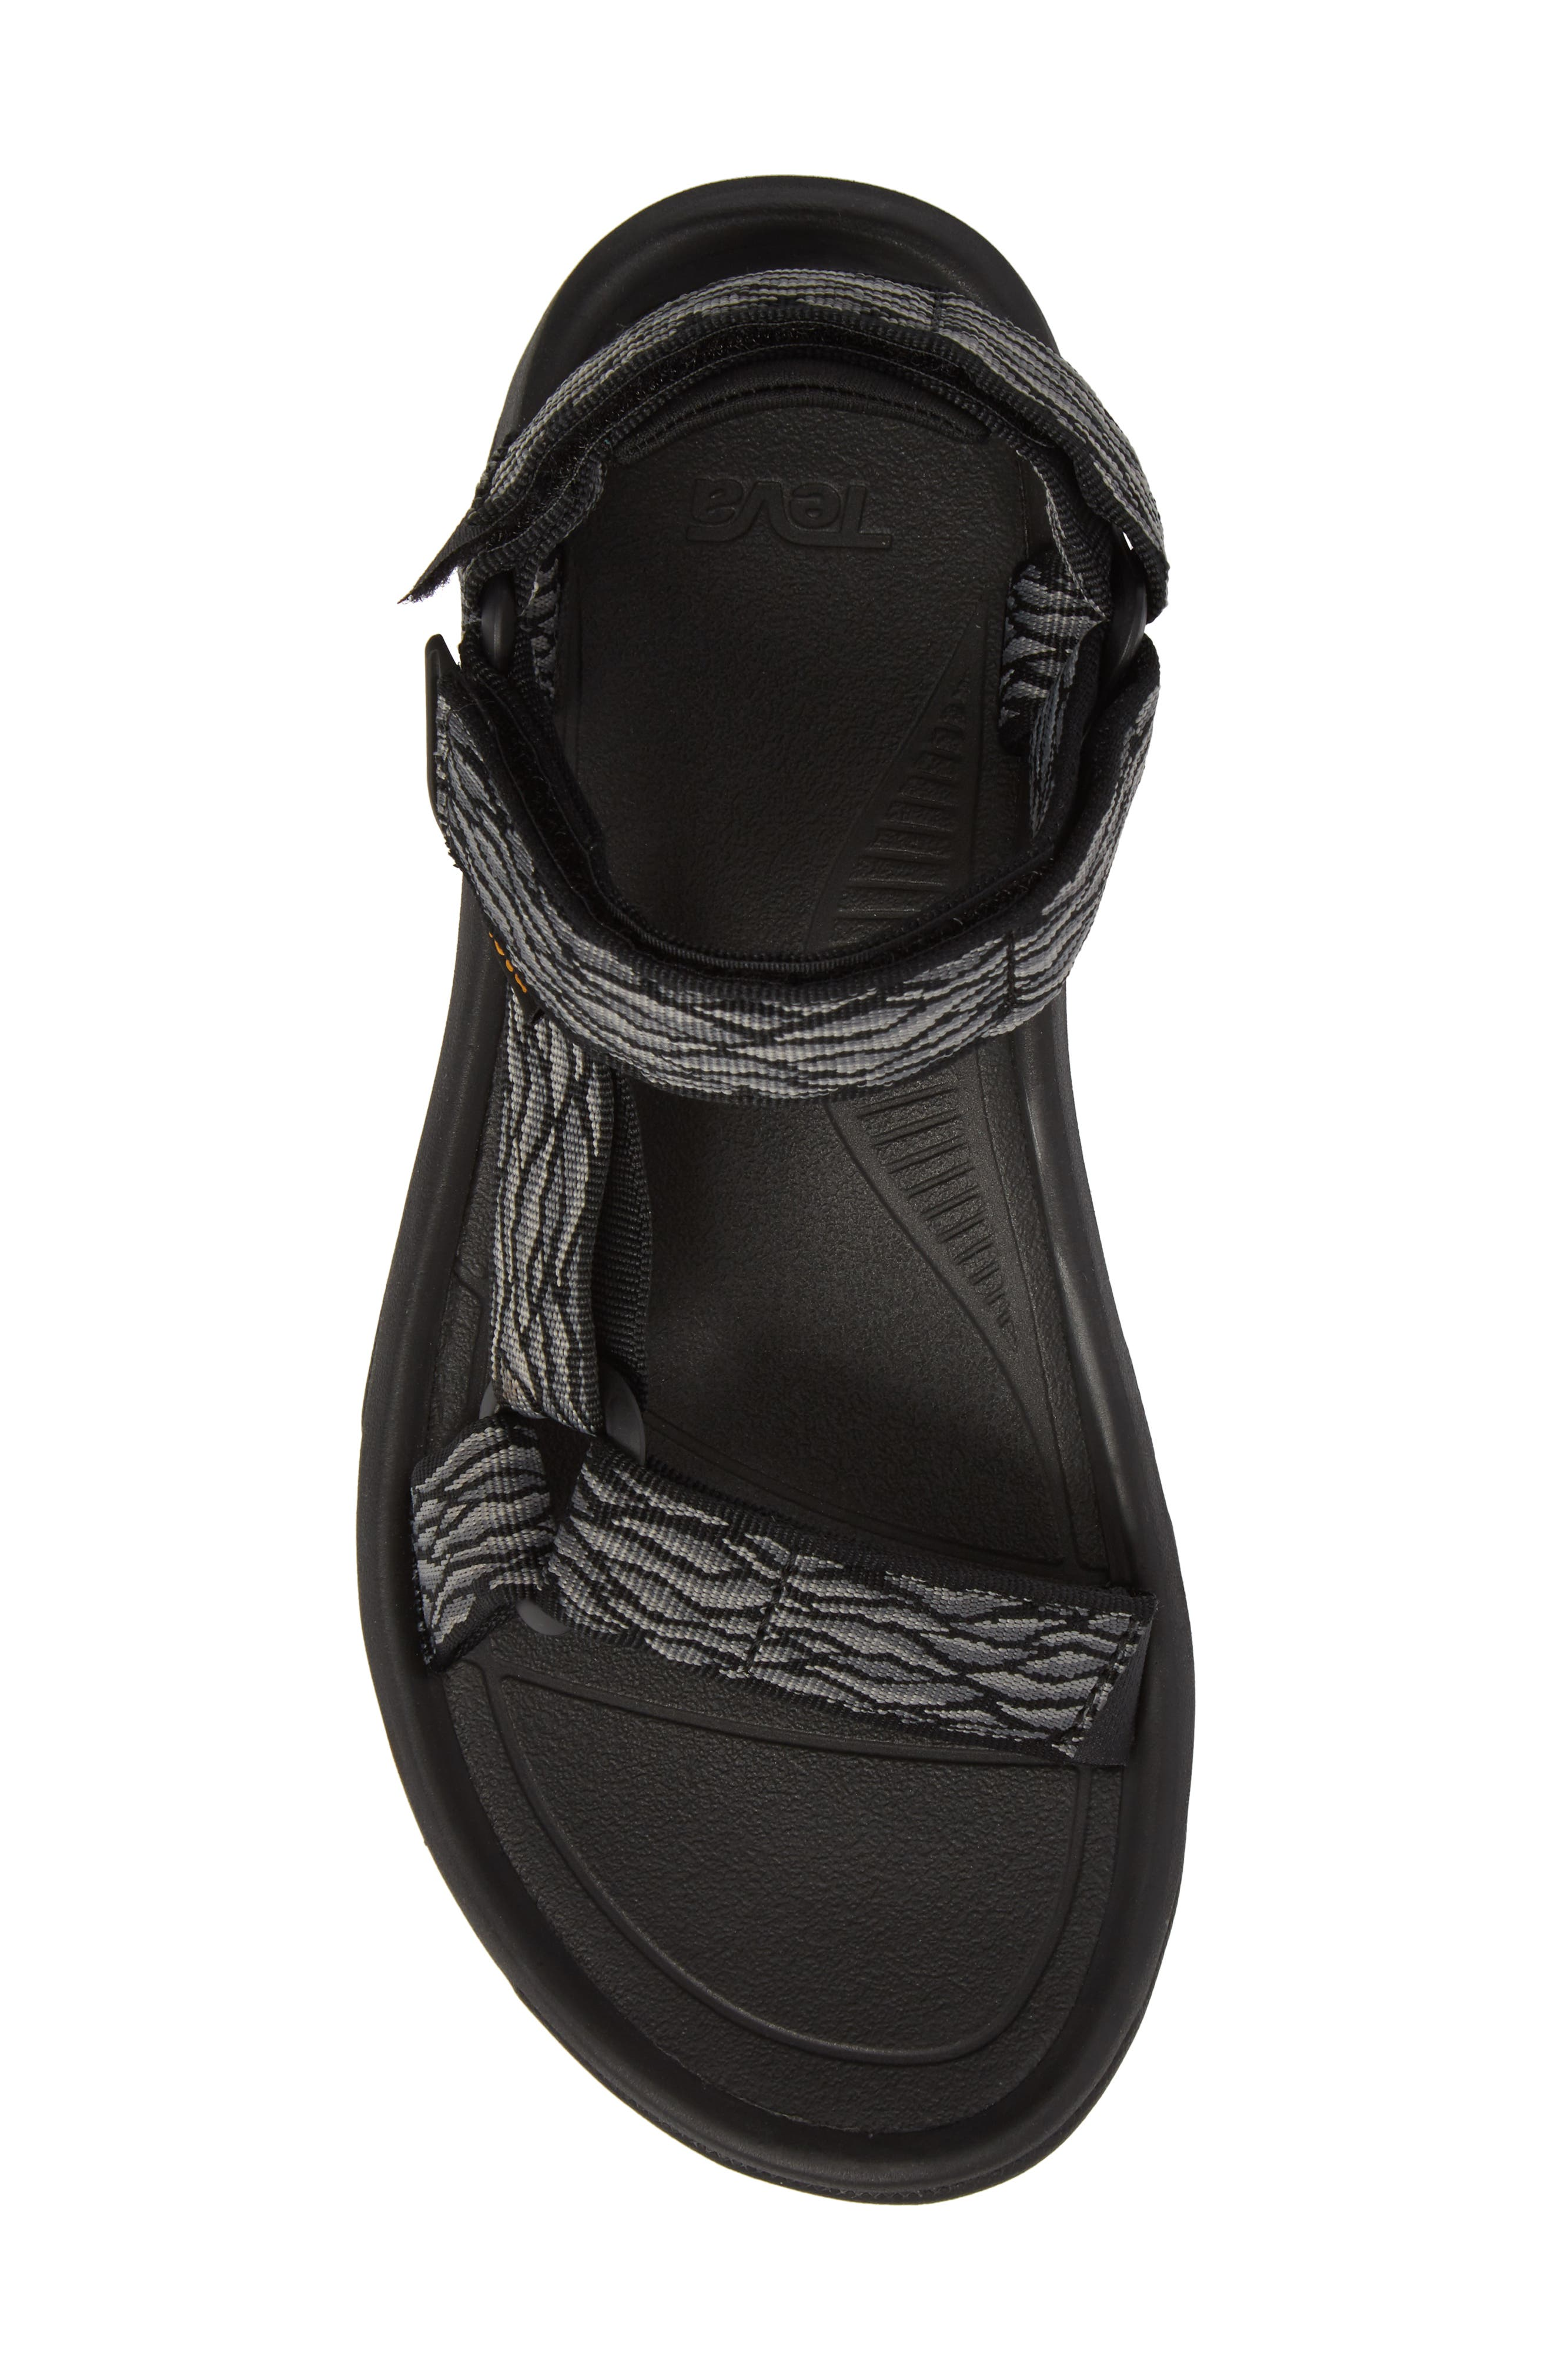 Hurricane XLT 2 Sandal,                             Alternate thumbnail 5, color,                             Black/ Grey Nylon